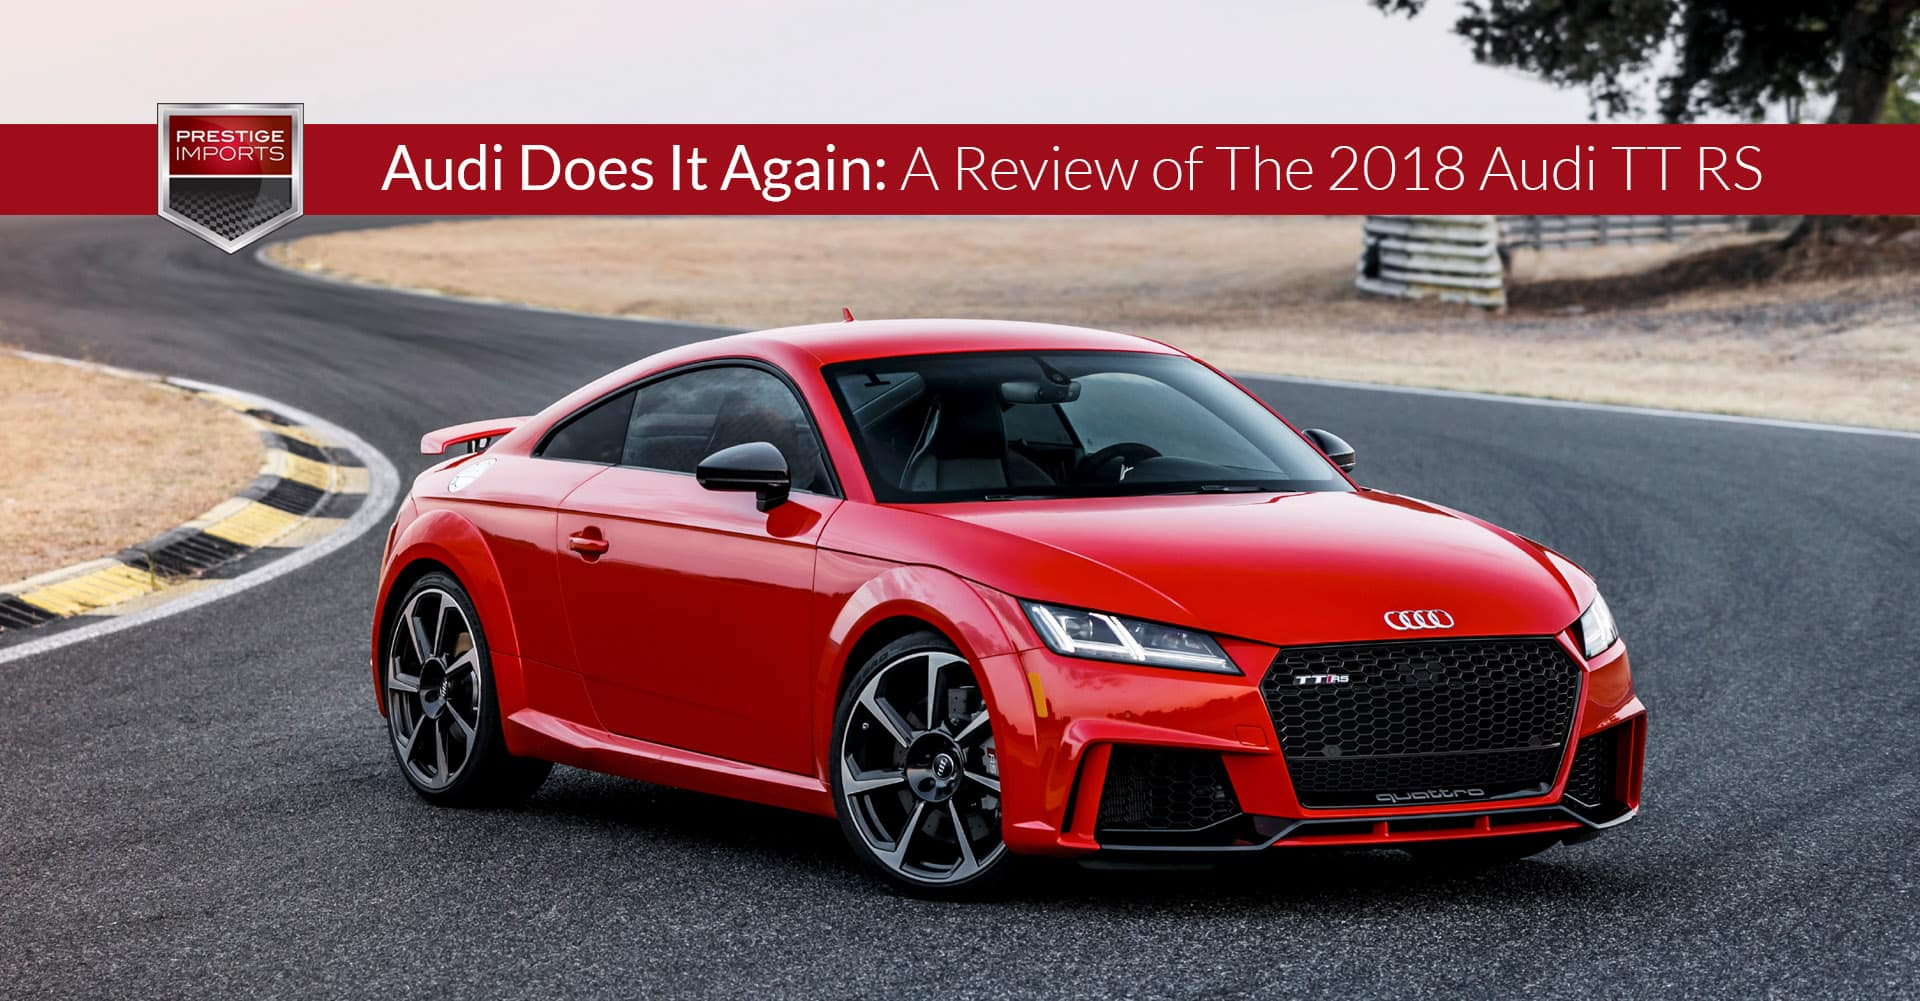 Audi Does It Again A Review Of The Audi TT RS - 2018 audi tt